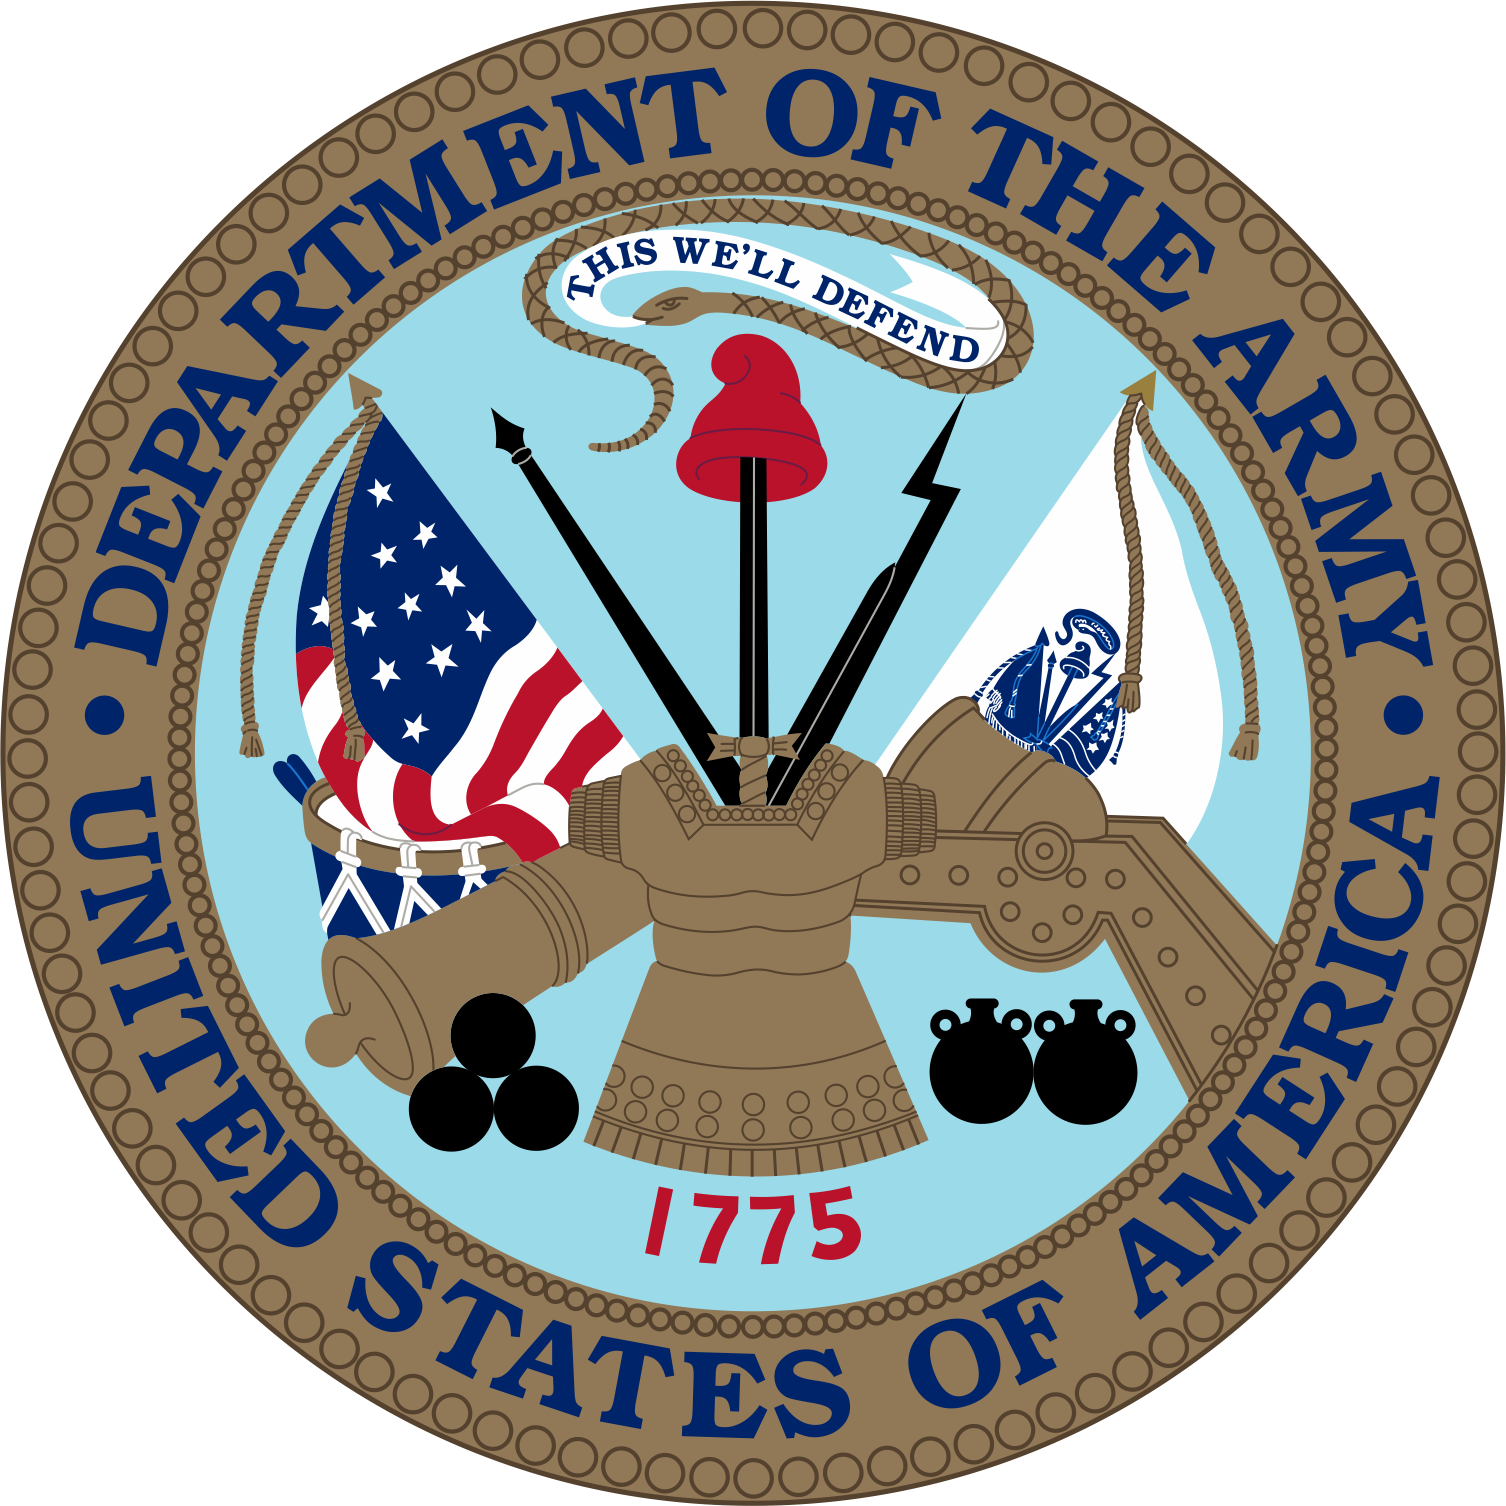 1506x1506 Symbols Amp Insignias Of The United States Army